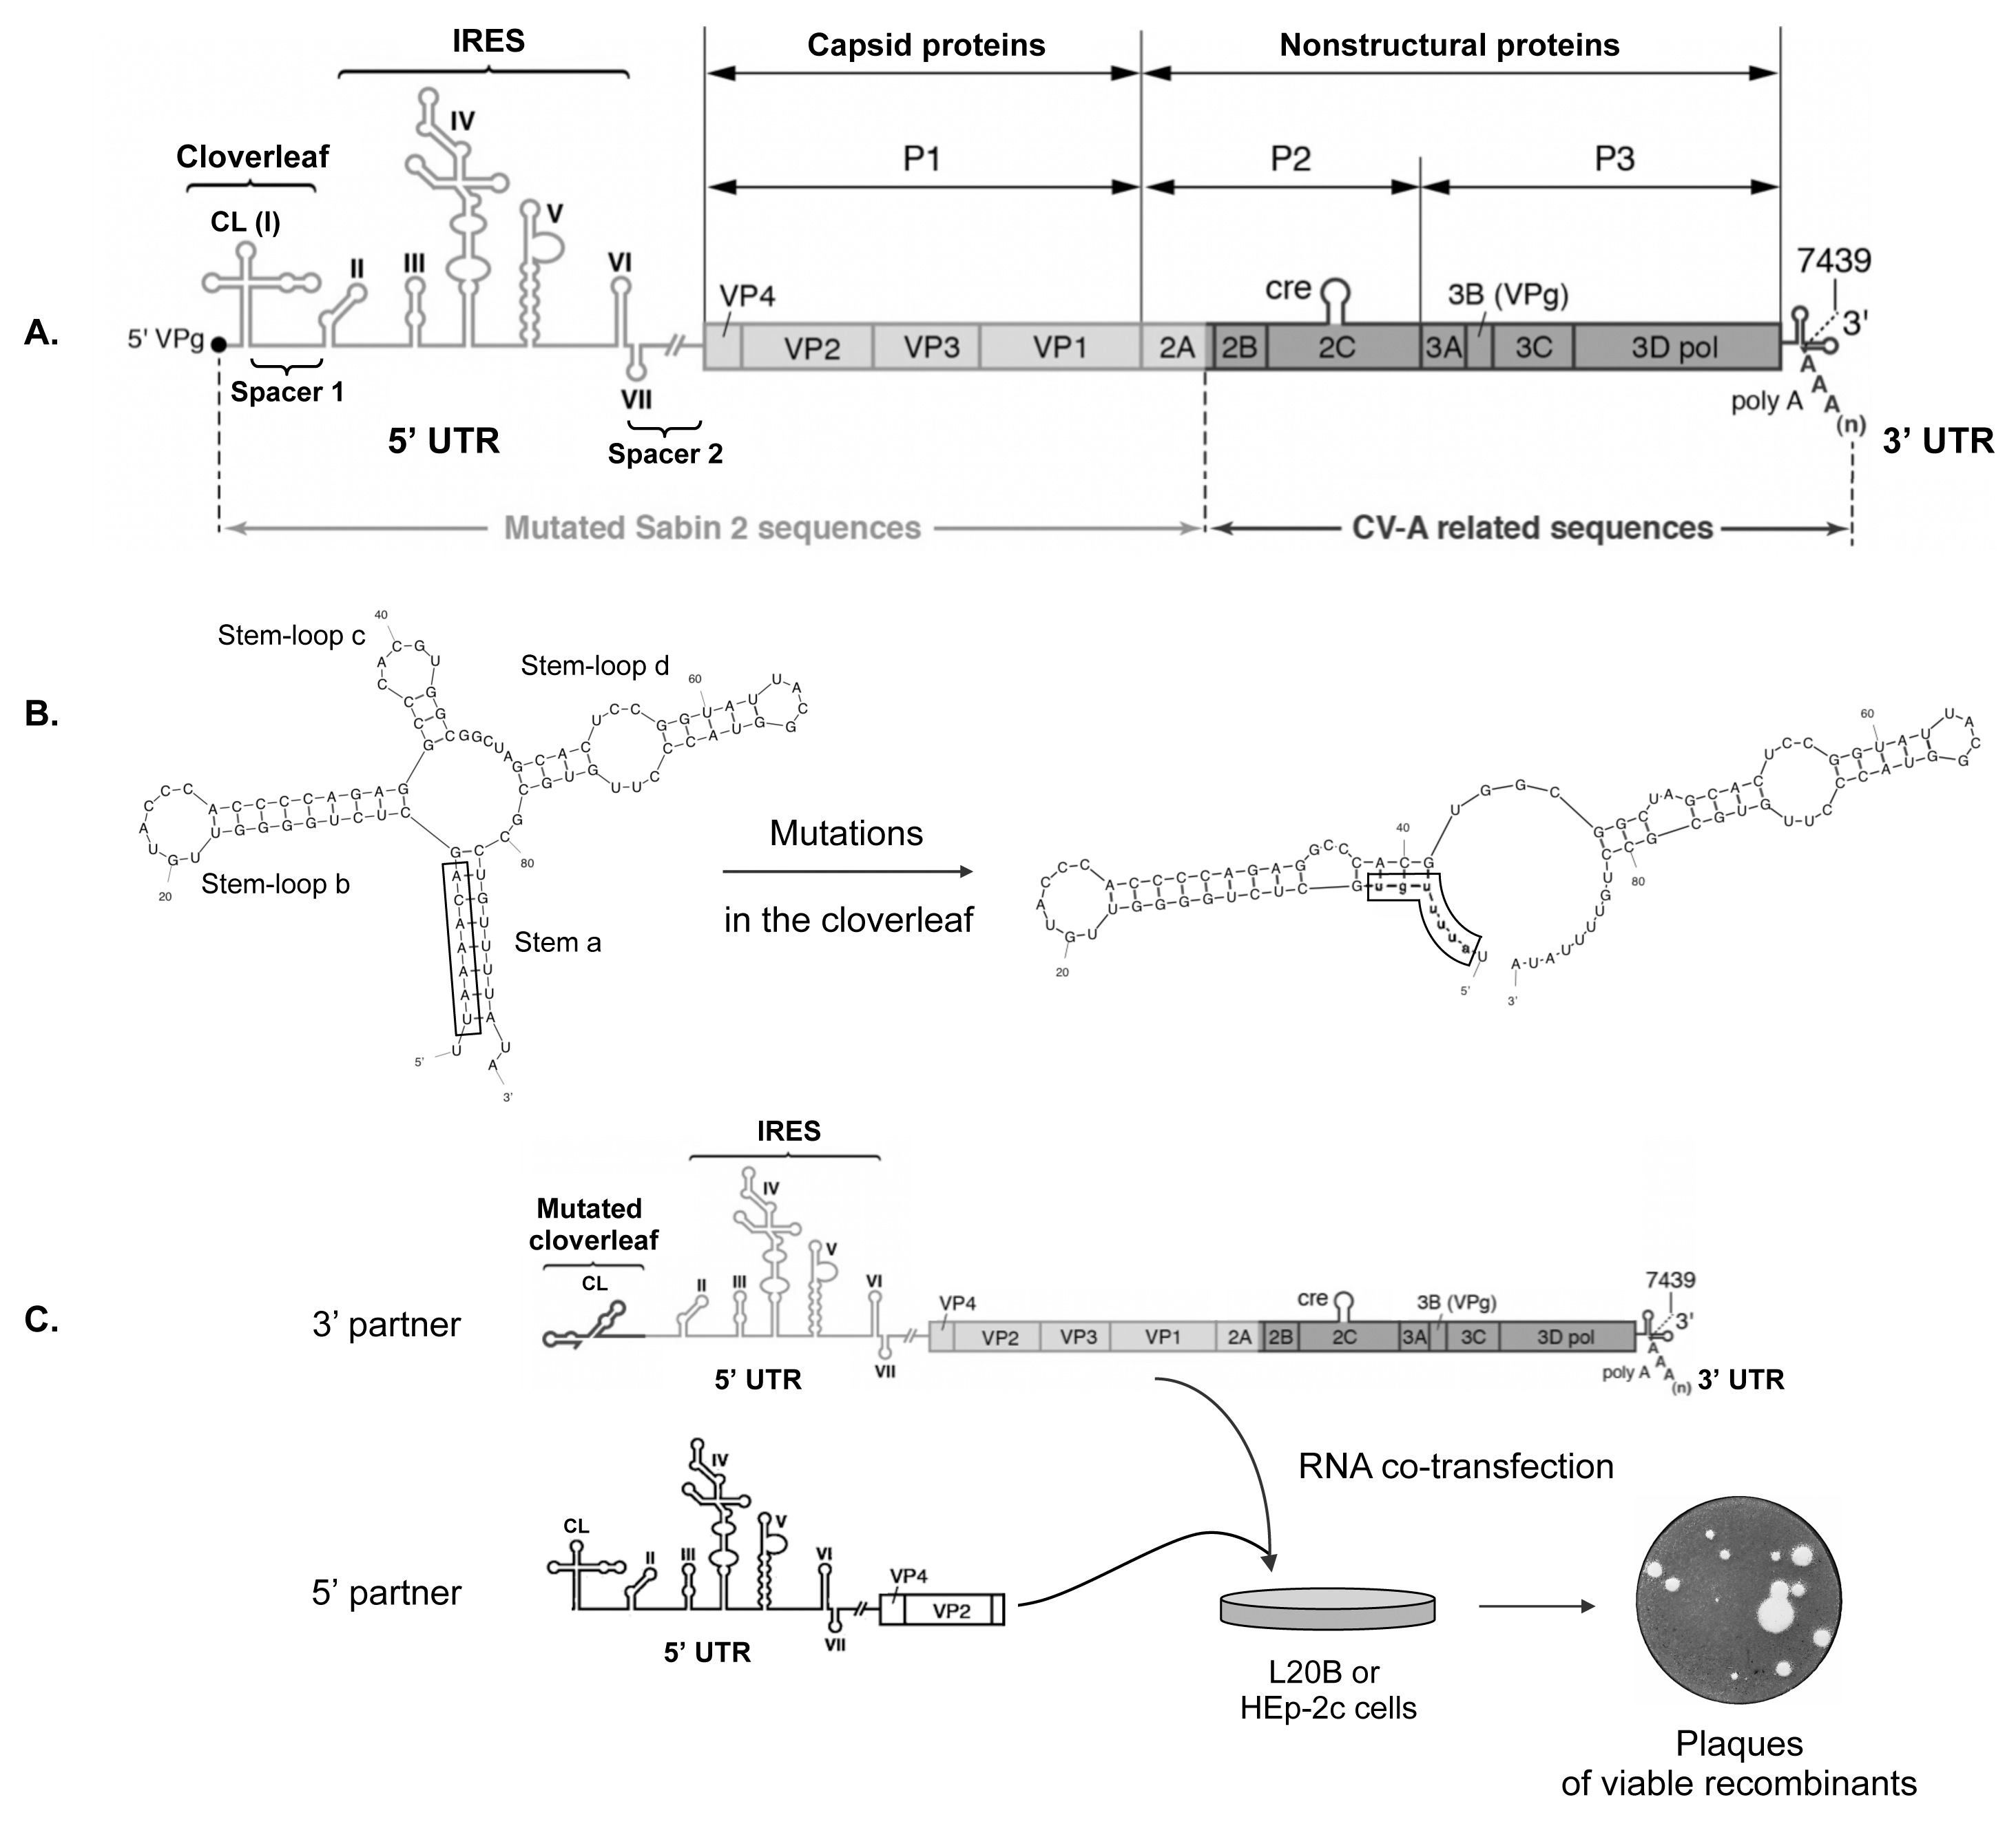 Experimental model of recombination in the 5' untranslated region of enteroviruses.